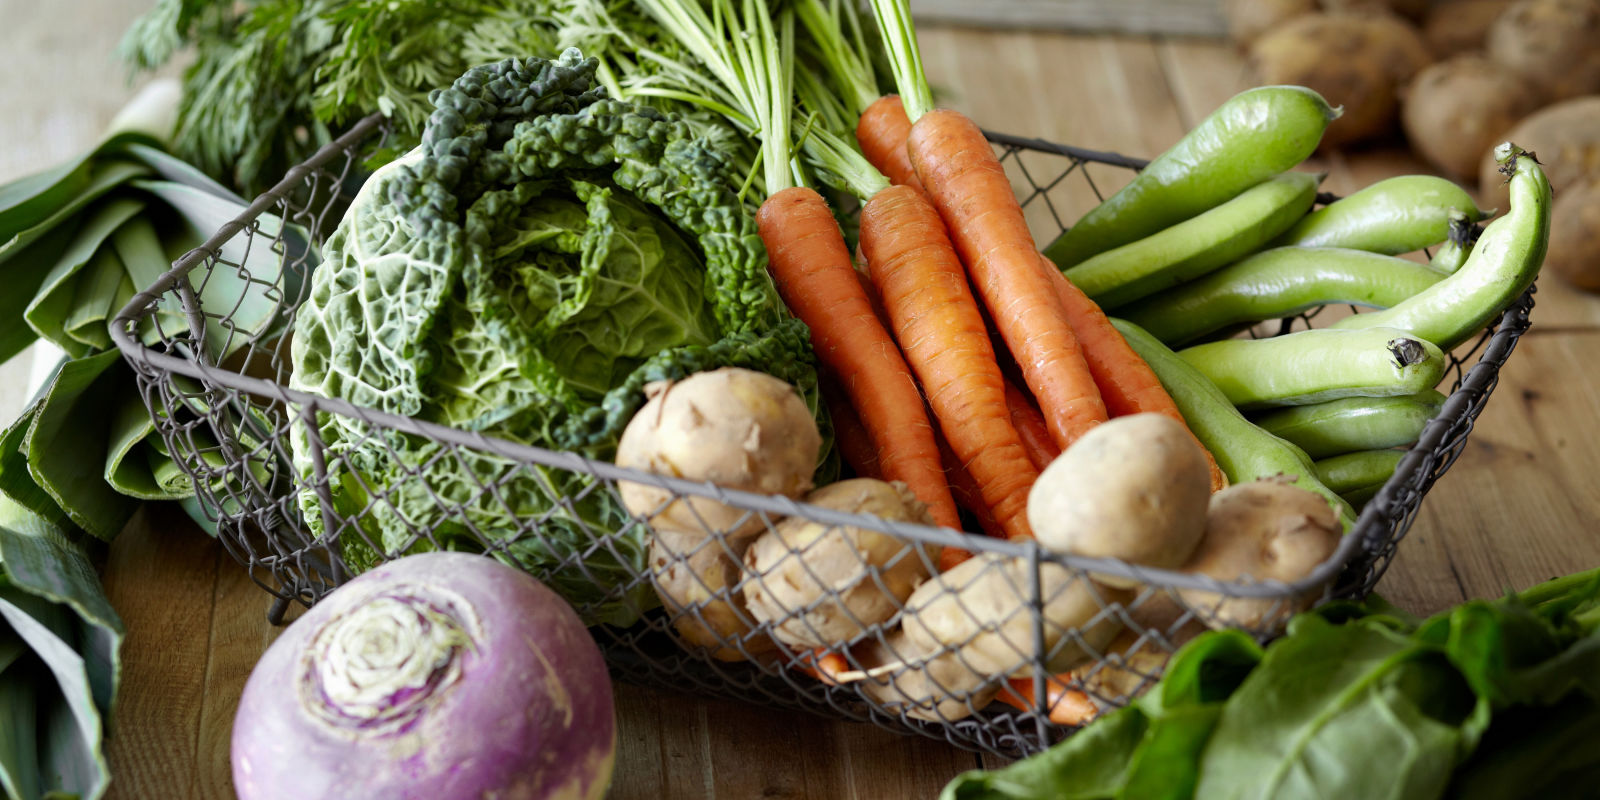 How To Grow Your Own Fruit And Vegetables